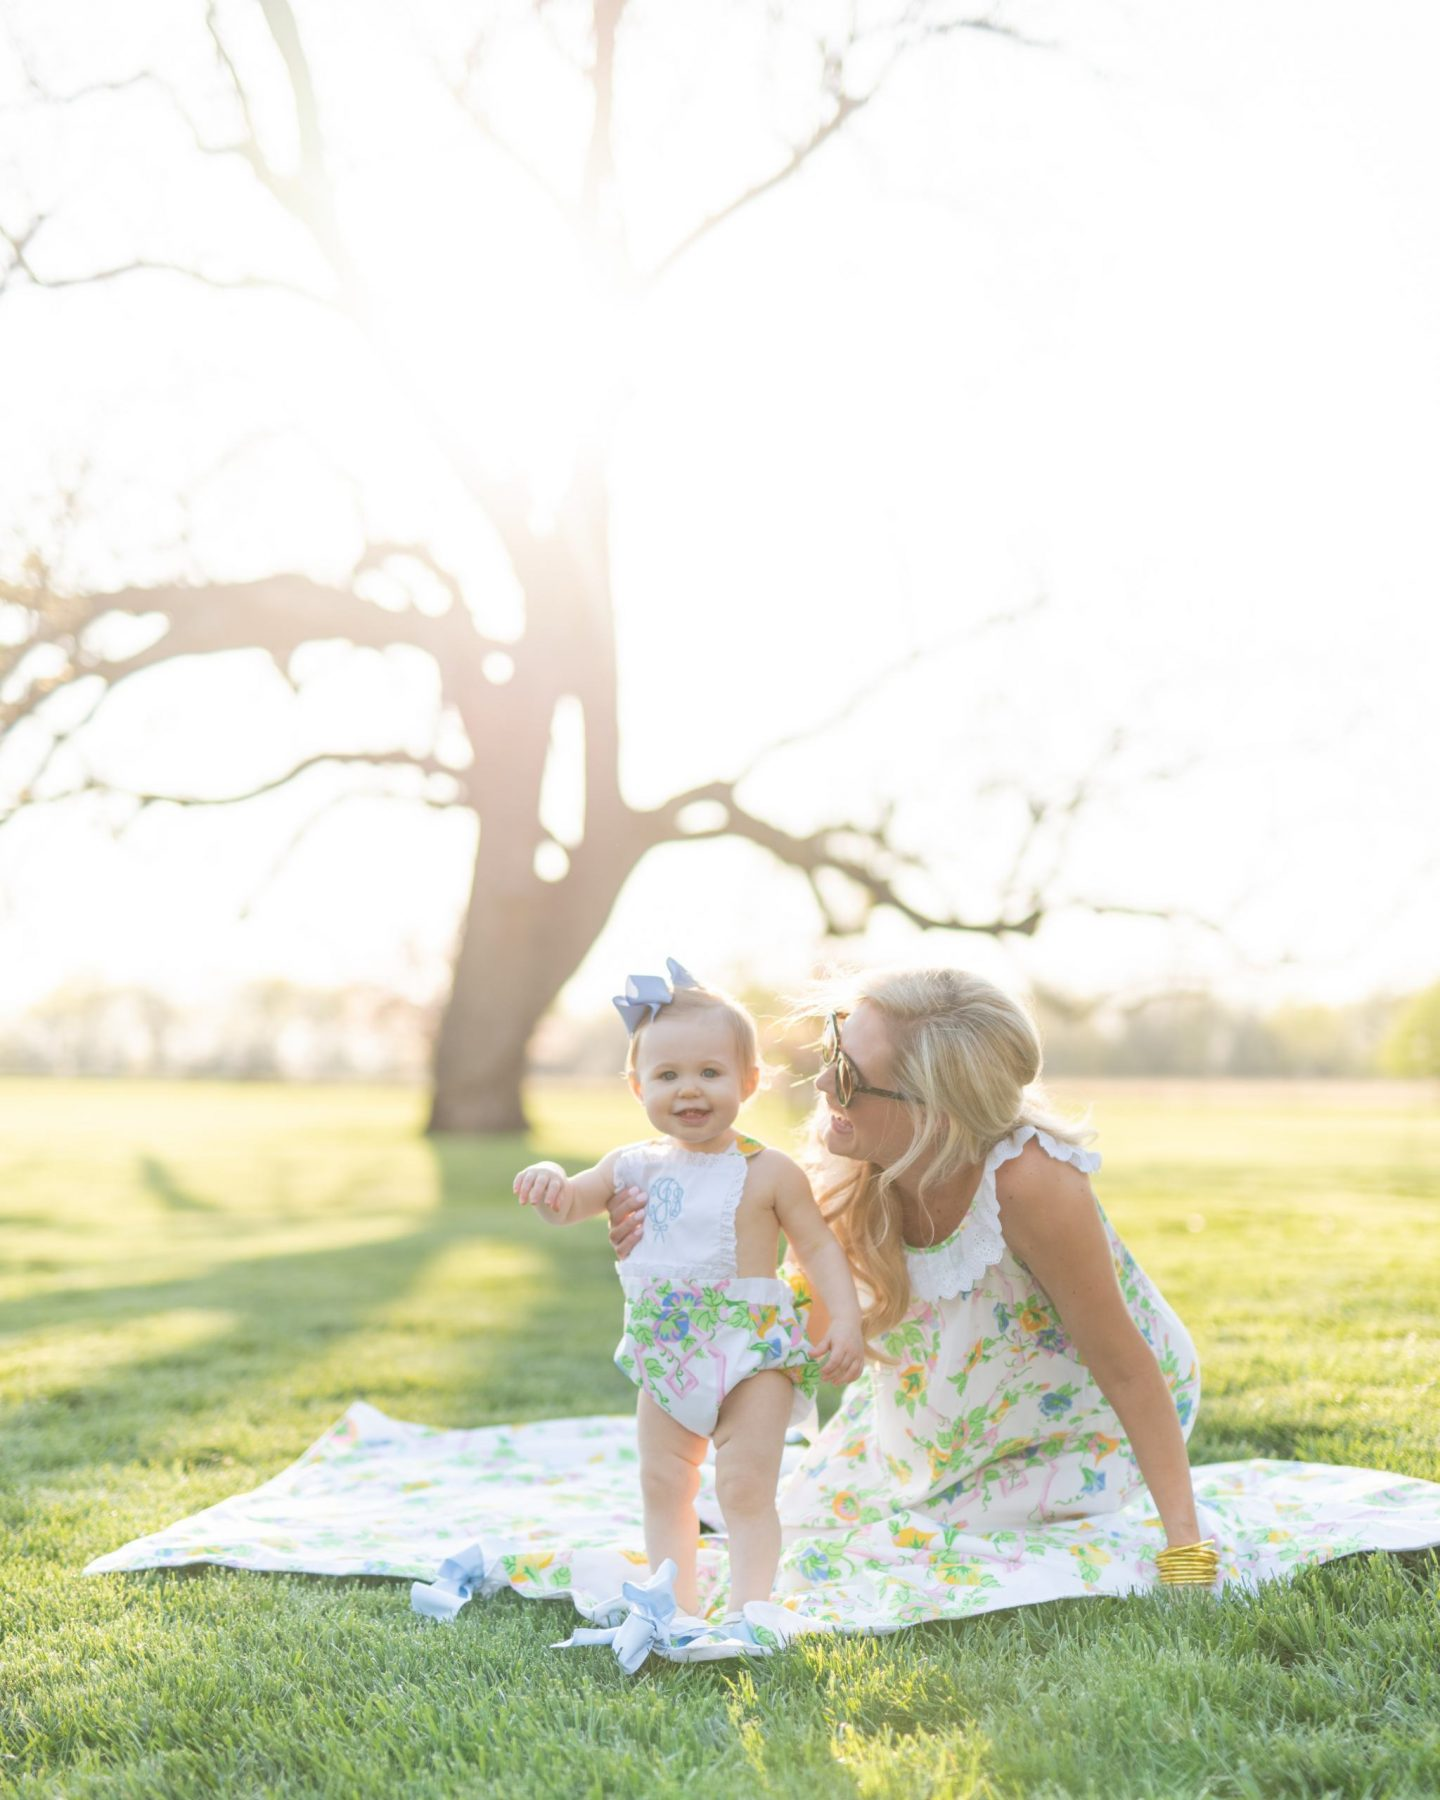 mommy and daughter fashion sitting with a picnic under a southern sky in matching outfits